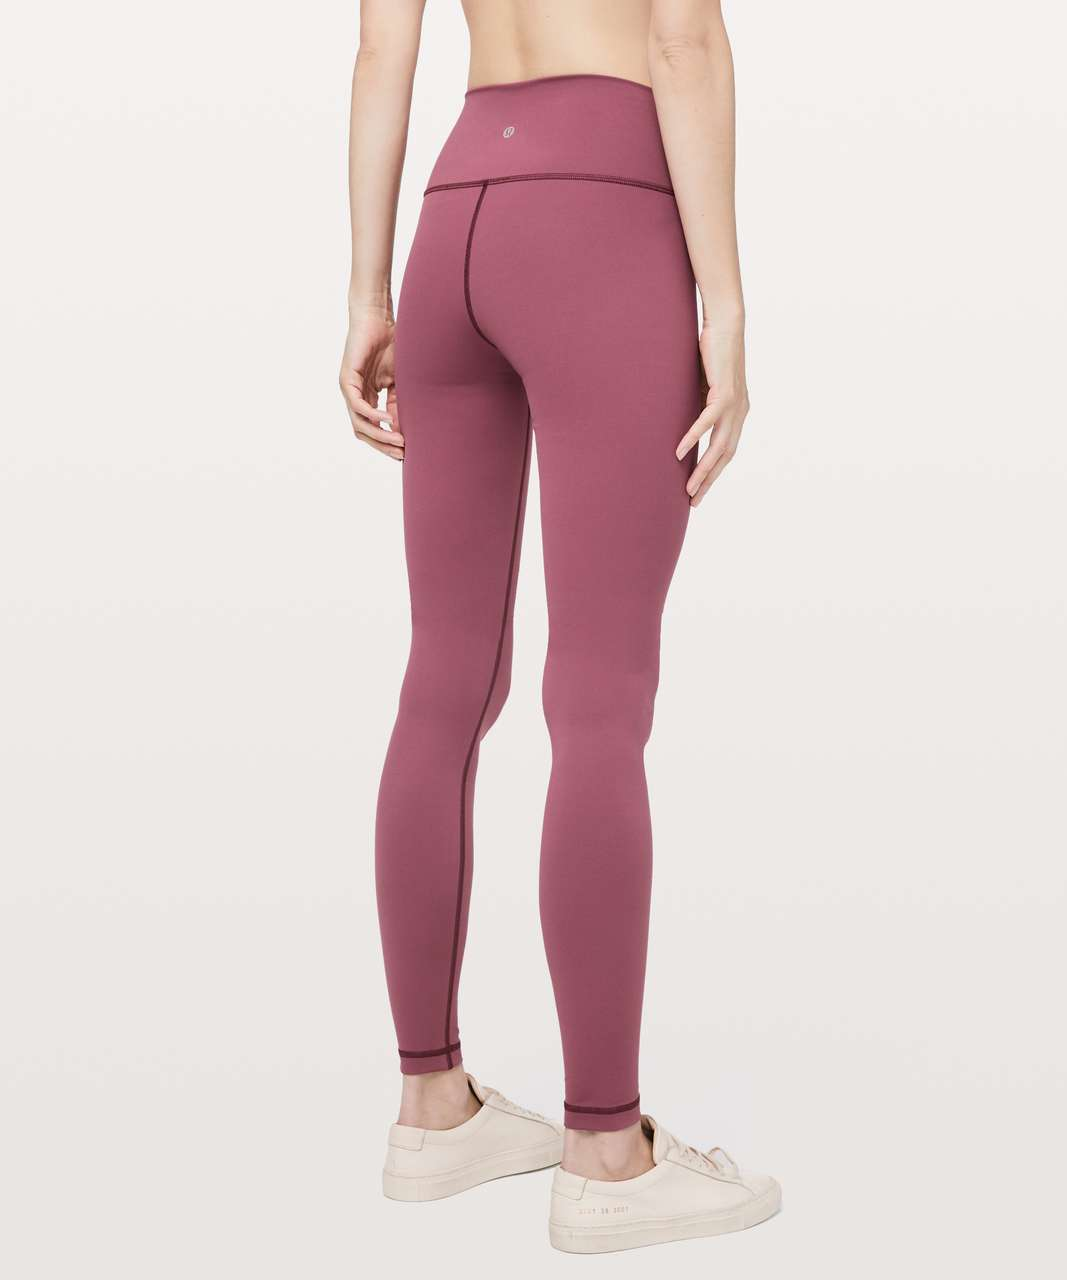 "Lululemon Wunder Under High-Rise Tight *Full-On Luxtreme Tall 31"" - Misty Merlot"